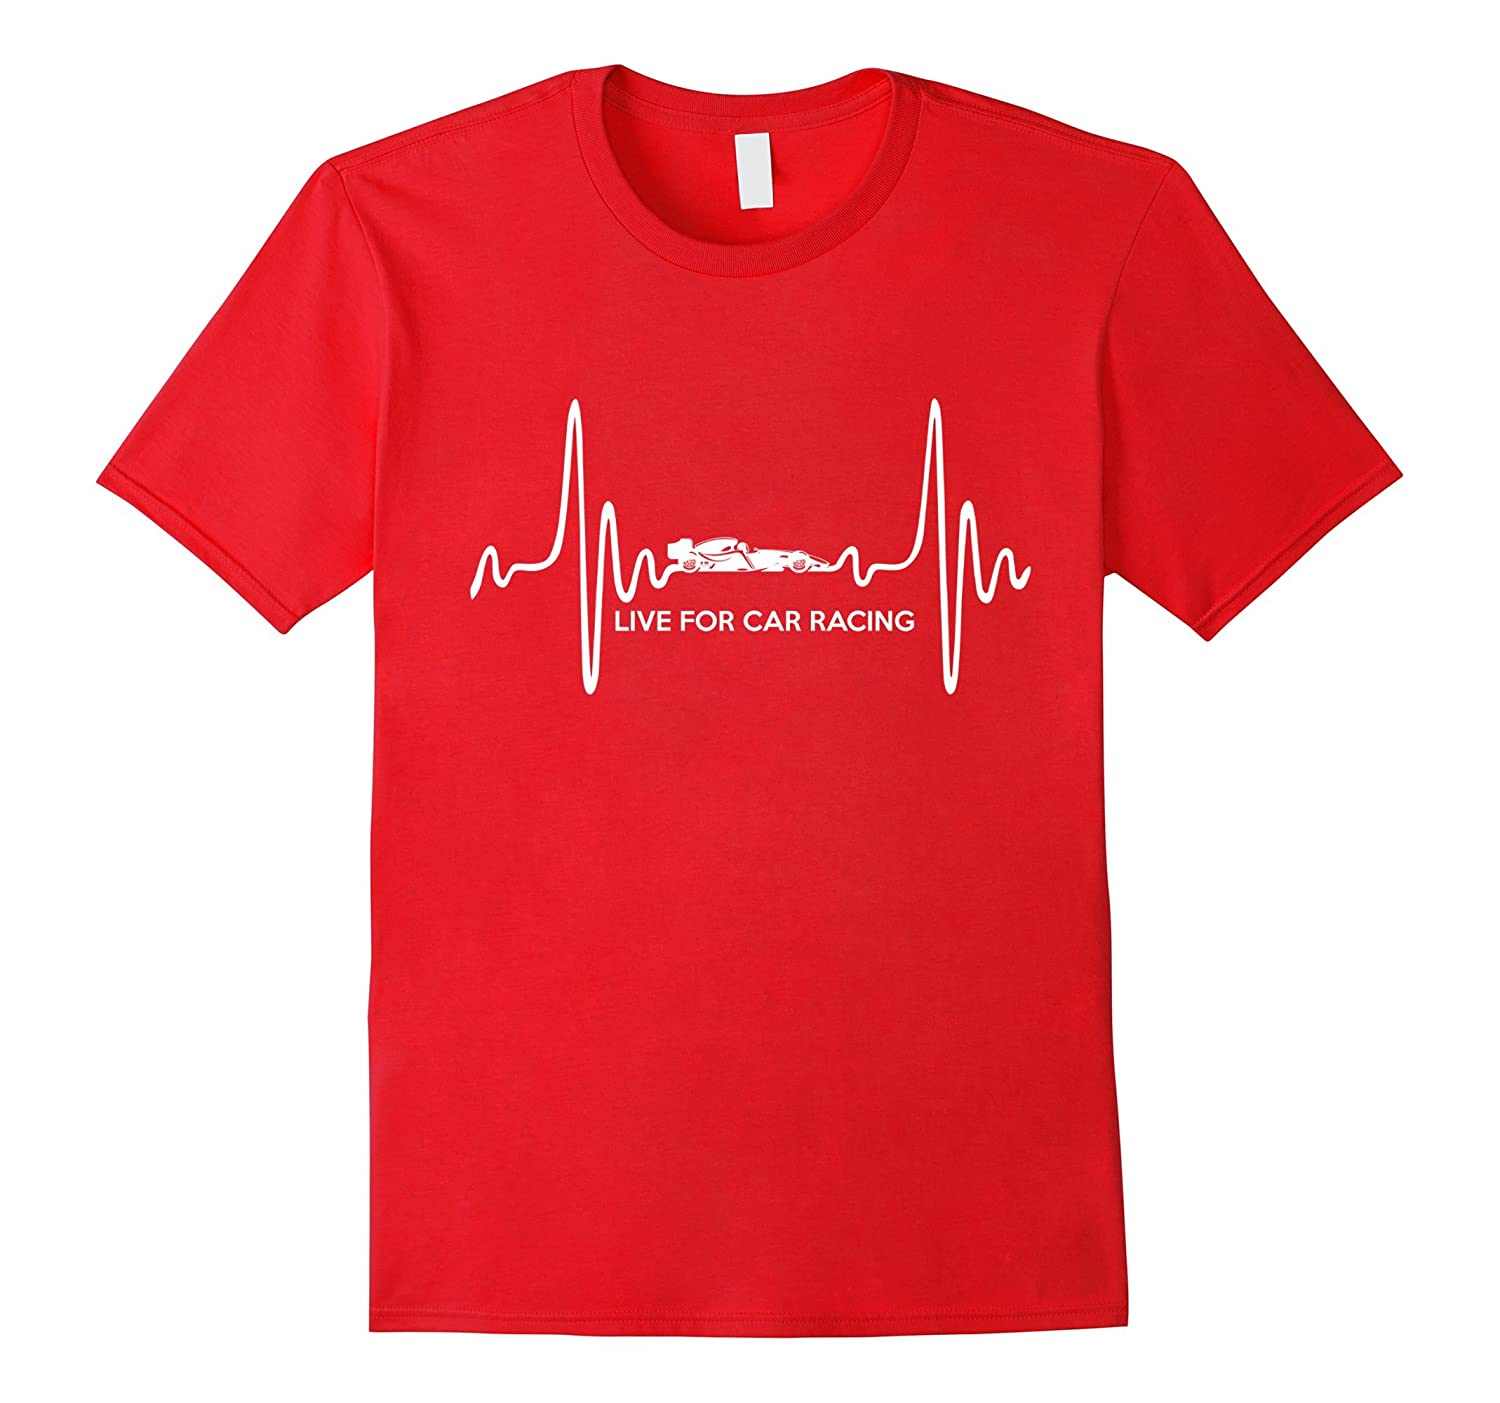 Live for Car Racing T Shirt - Car Racing heartbeat T Shirt-Vaci